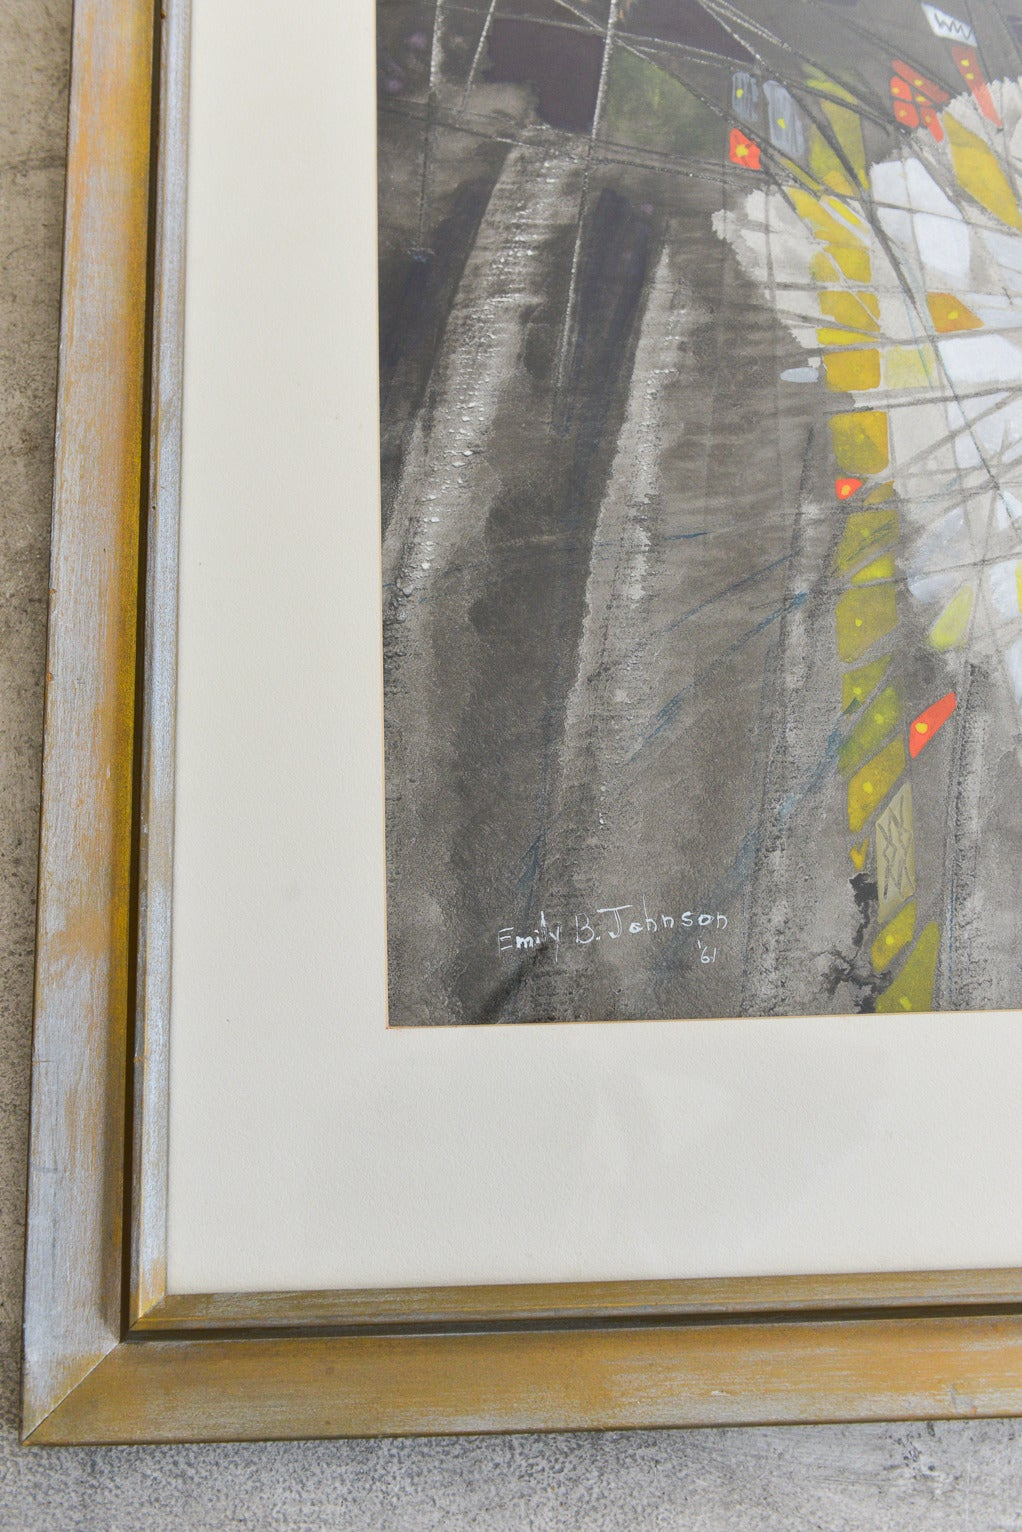 Original Abstract Watercolor by Emily B. Johnson '61 In Excellent Condition For Sale In Costa Mesa, CA